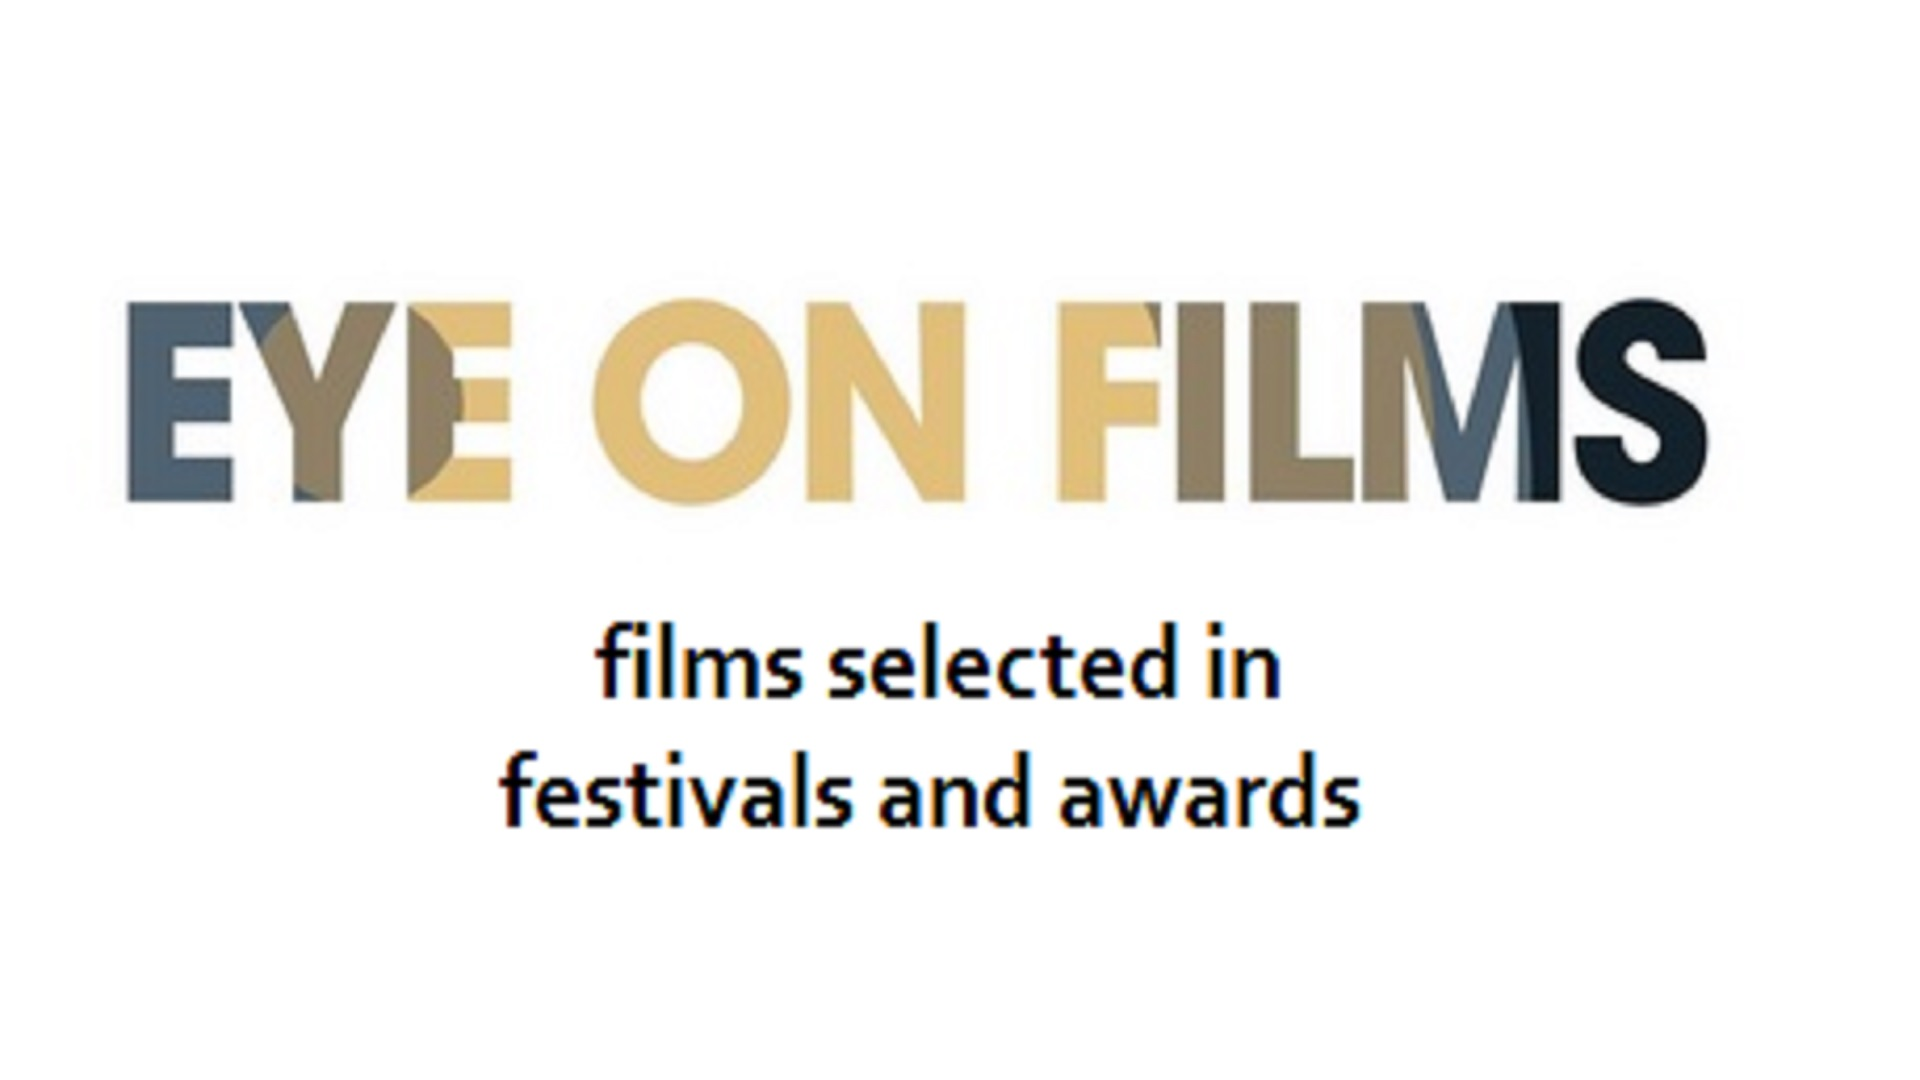 Films selected in festivals and awards | 2014